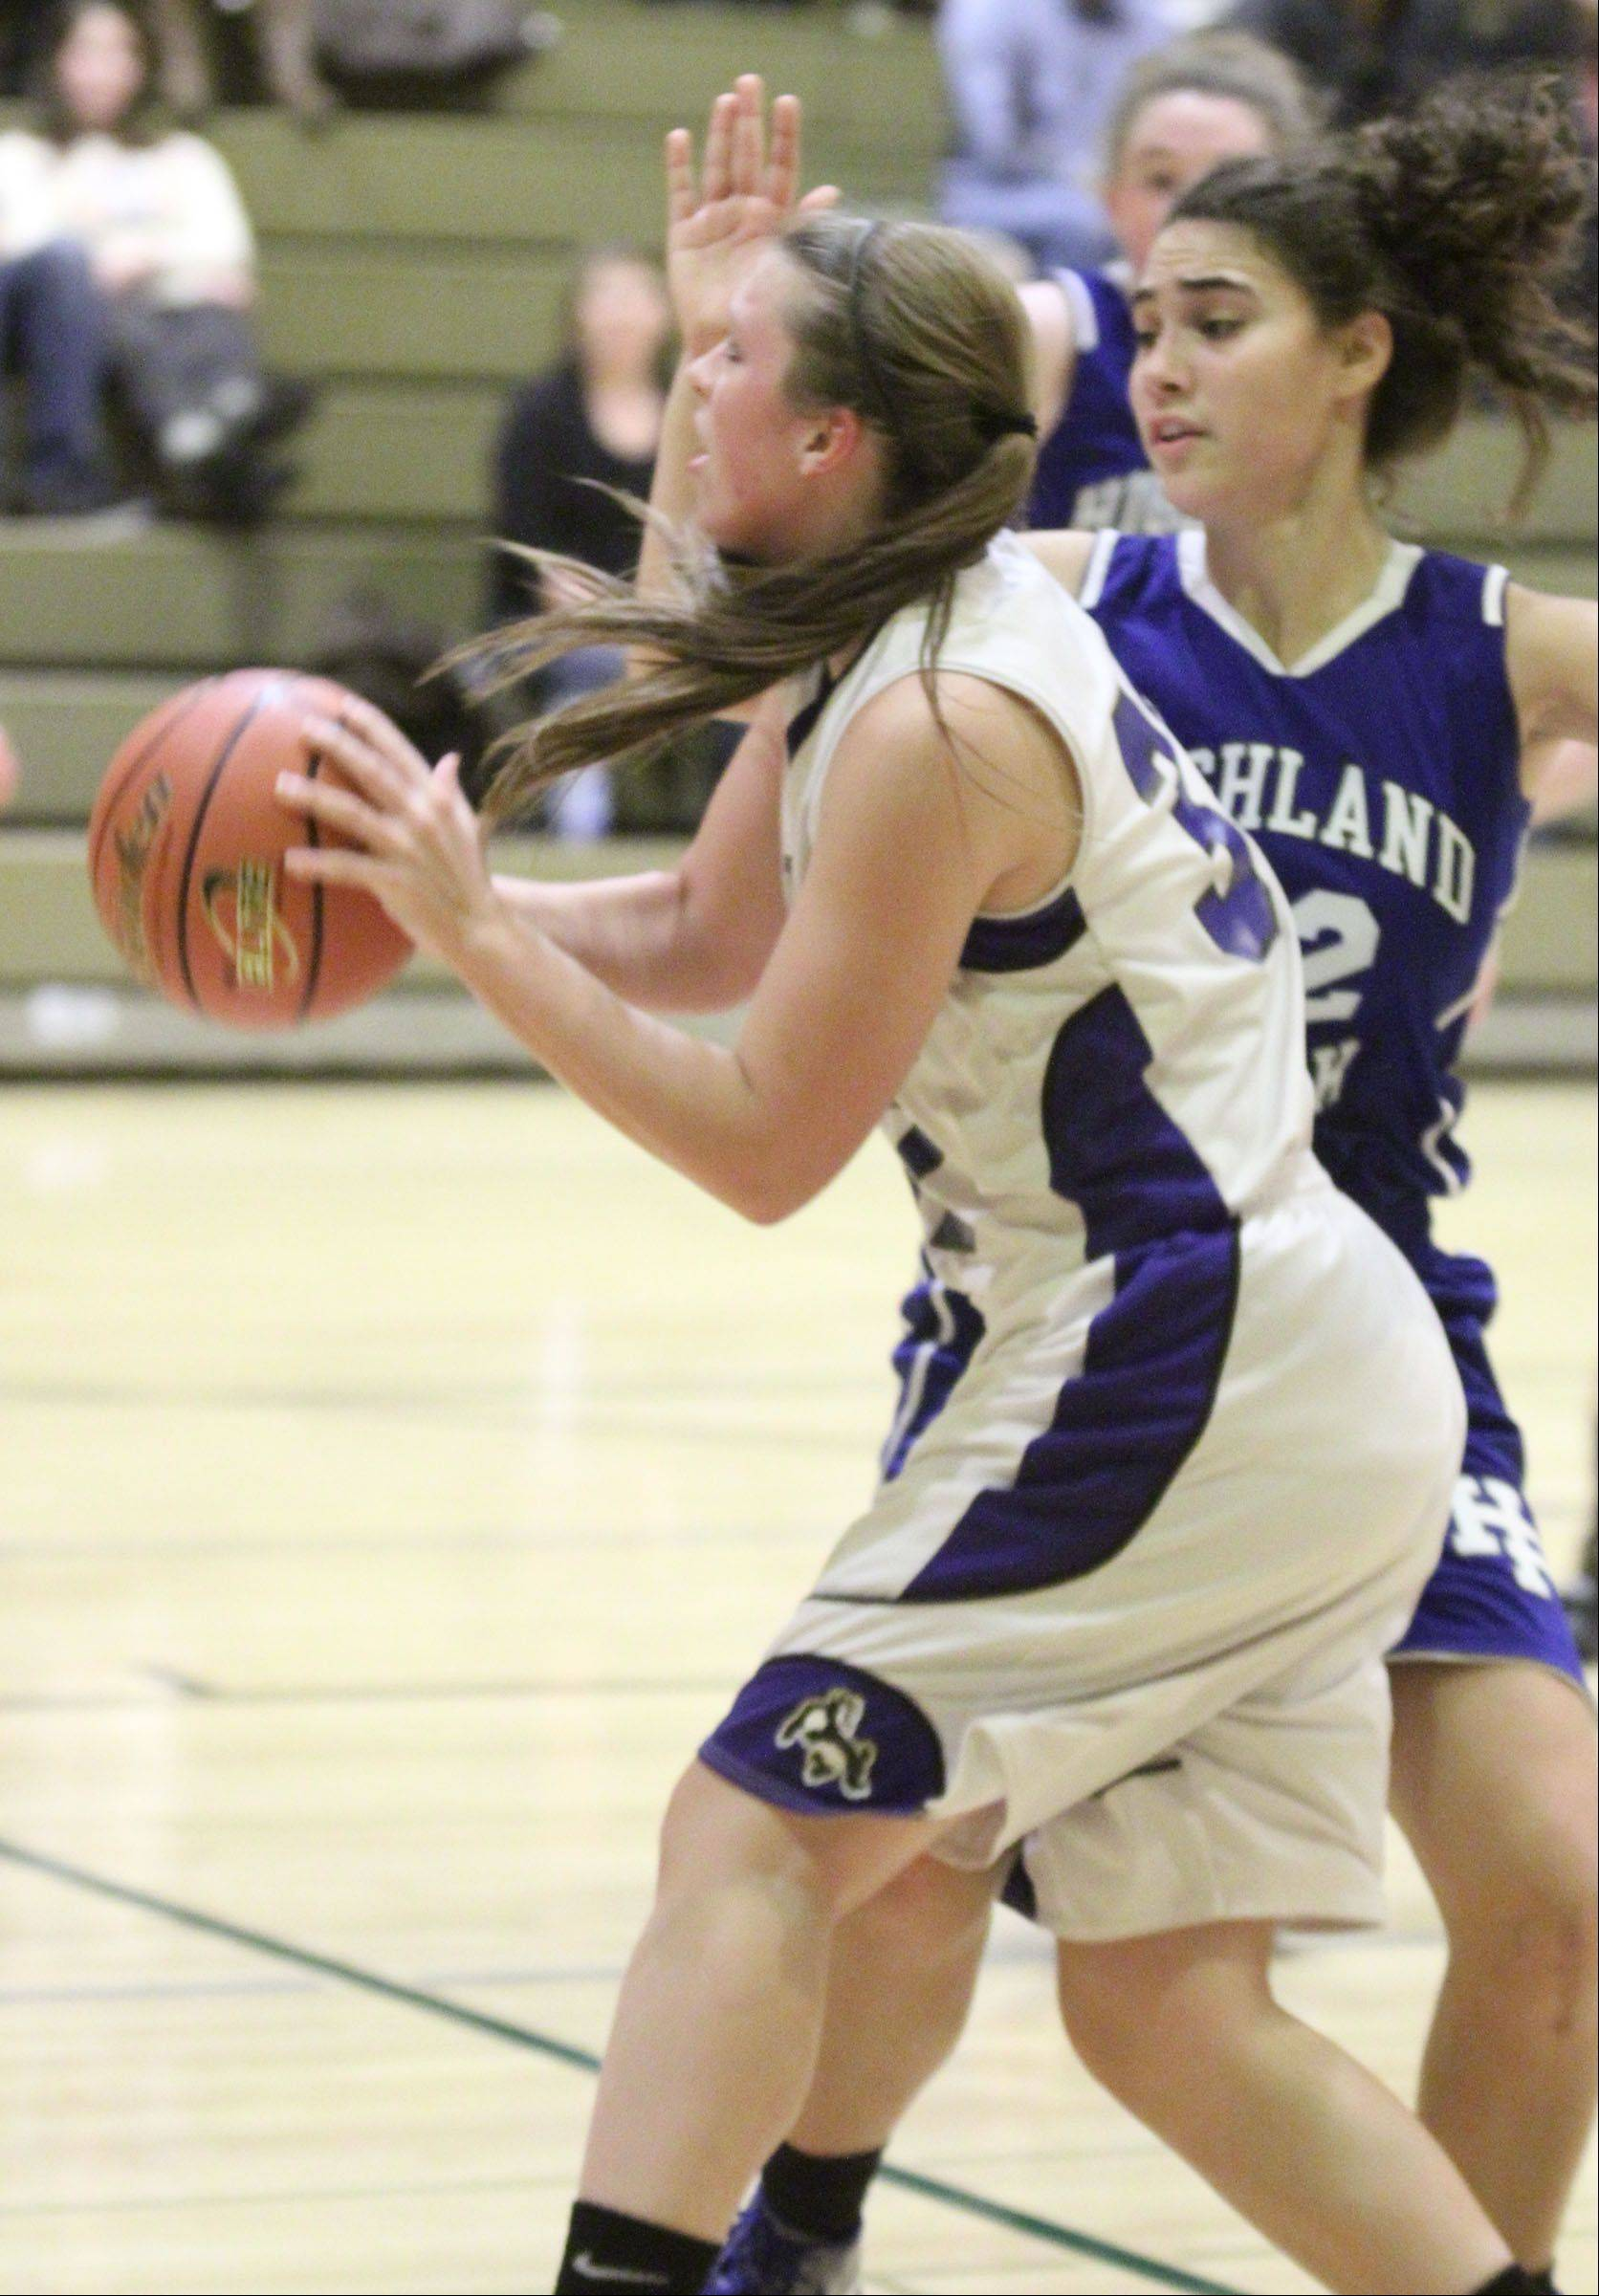 Images from the Highland Park at Wheeling girls basketball game Thursday, Dec. 20 in Wheeling.